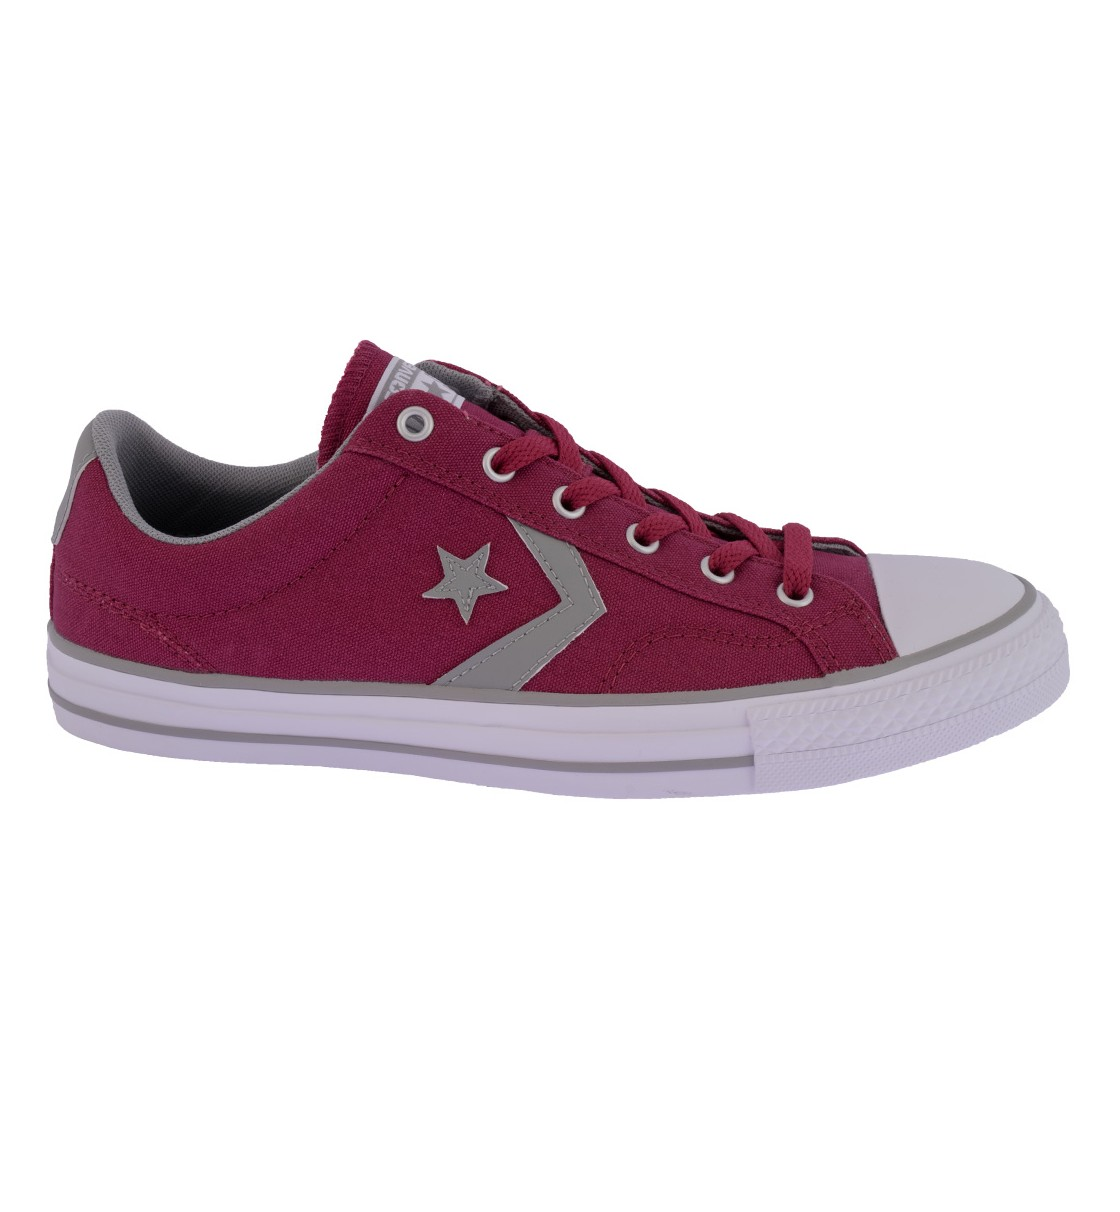 Converse Ανδρικό Παπούτσι Μόδας Star Player Ox 156622C